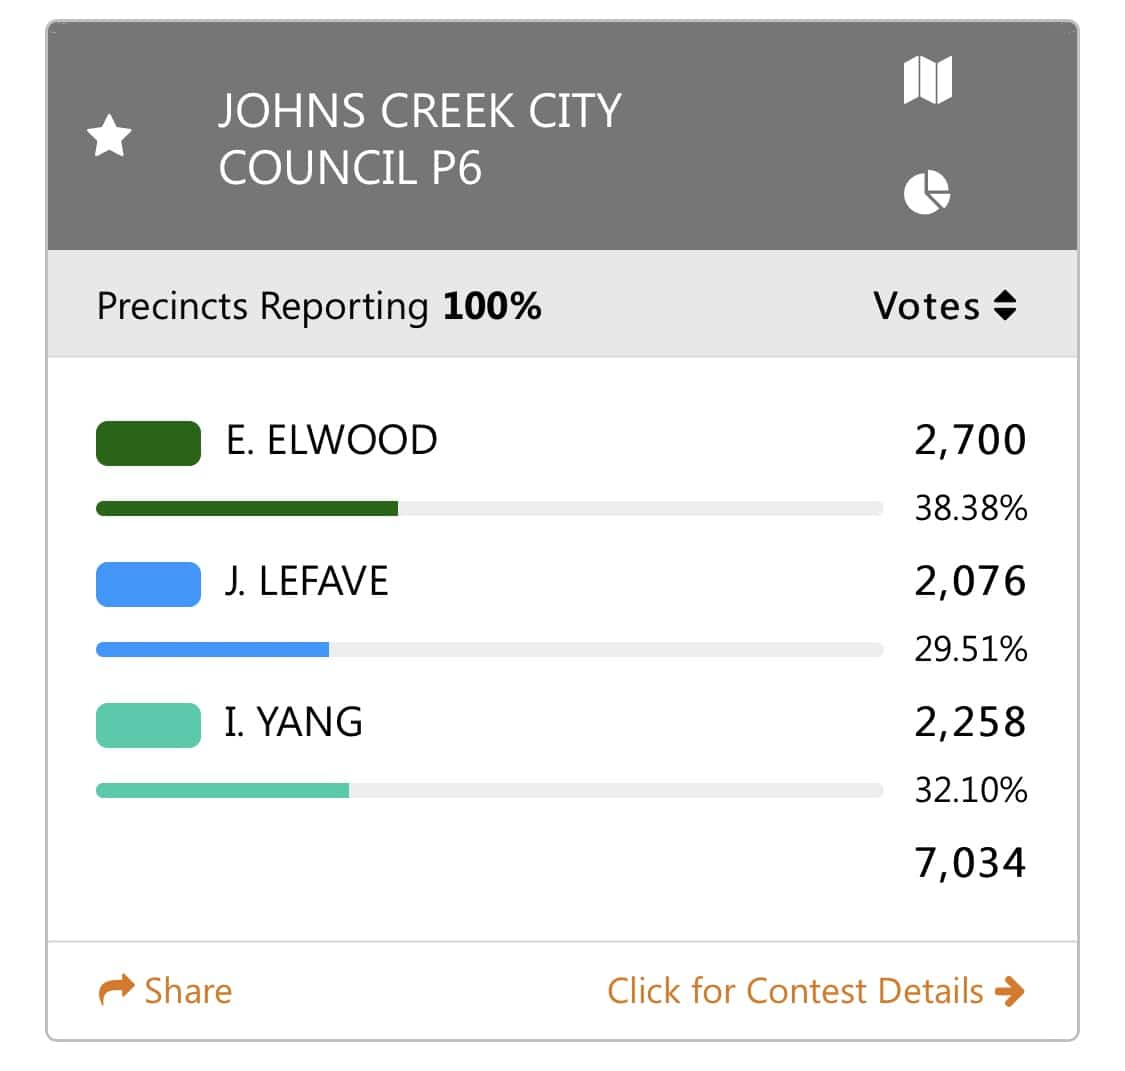 Johns Creek City Council Post 6 Results